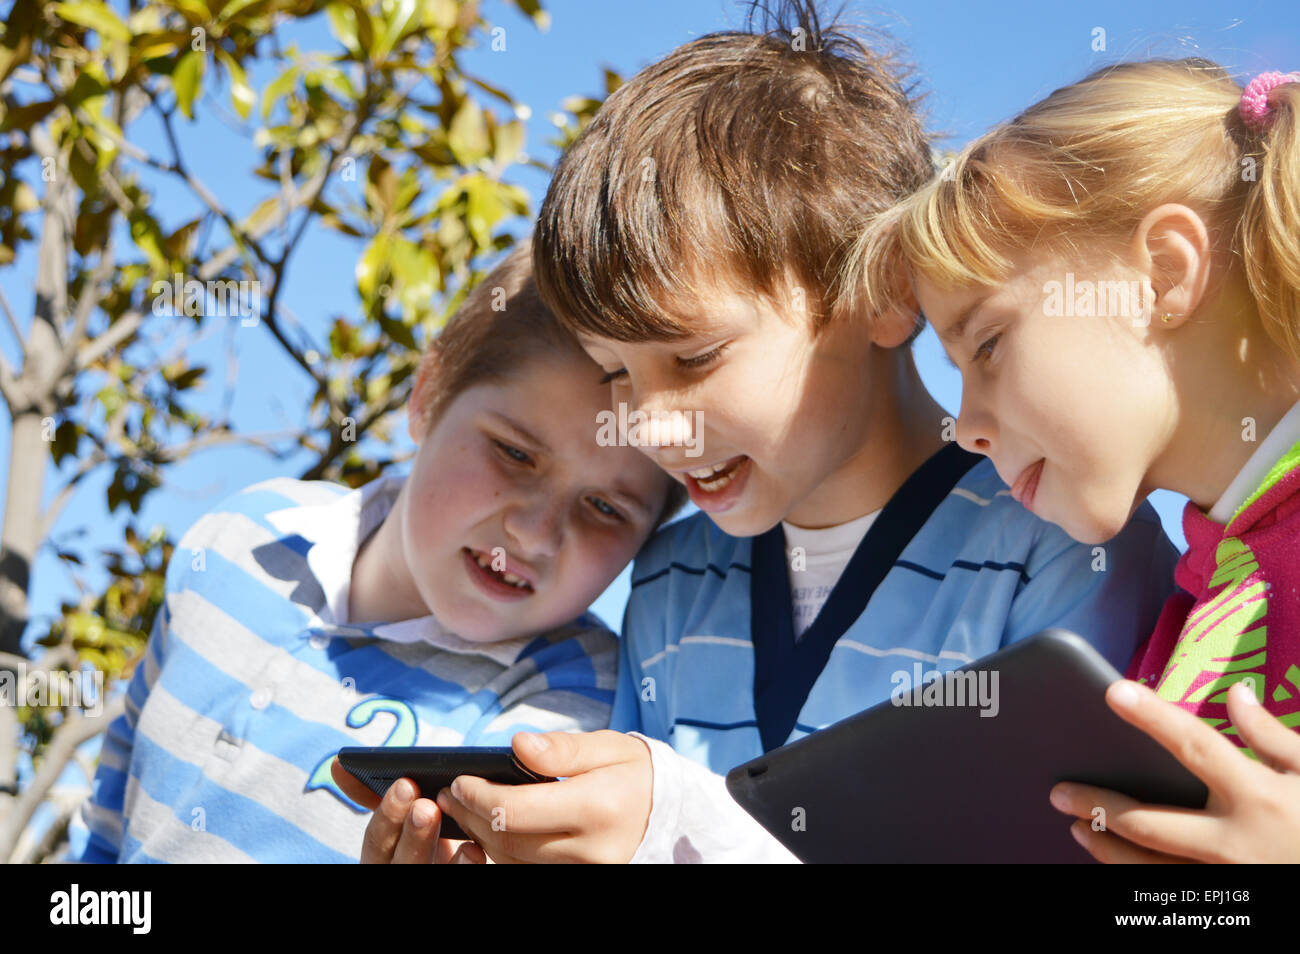 kids with smartphone - Stock Image